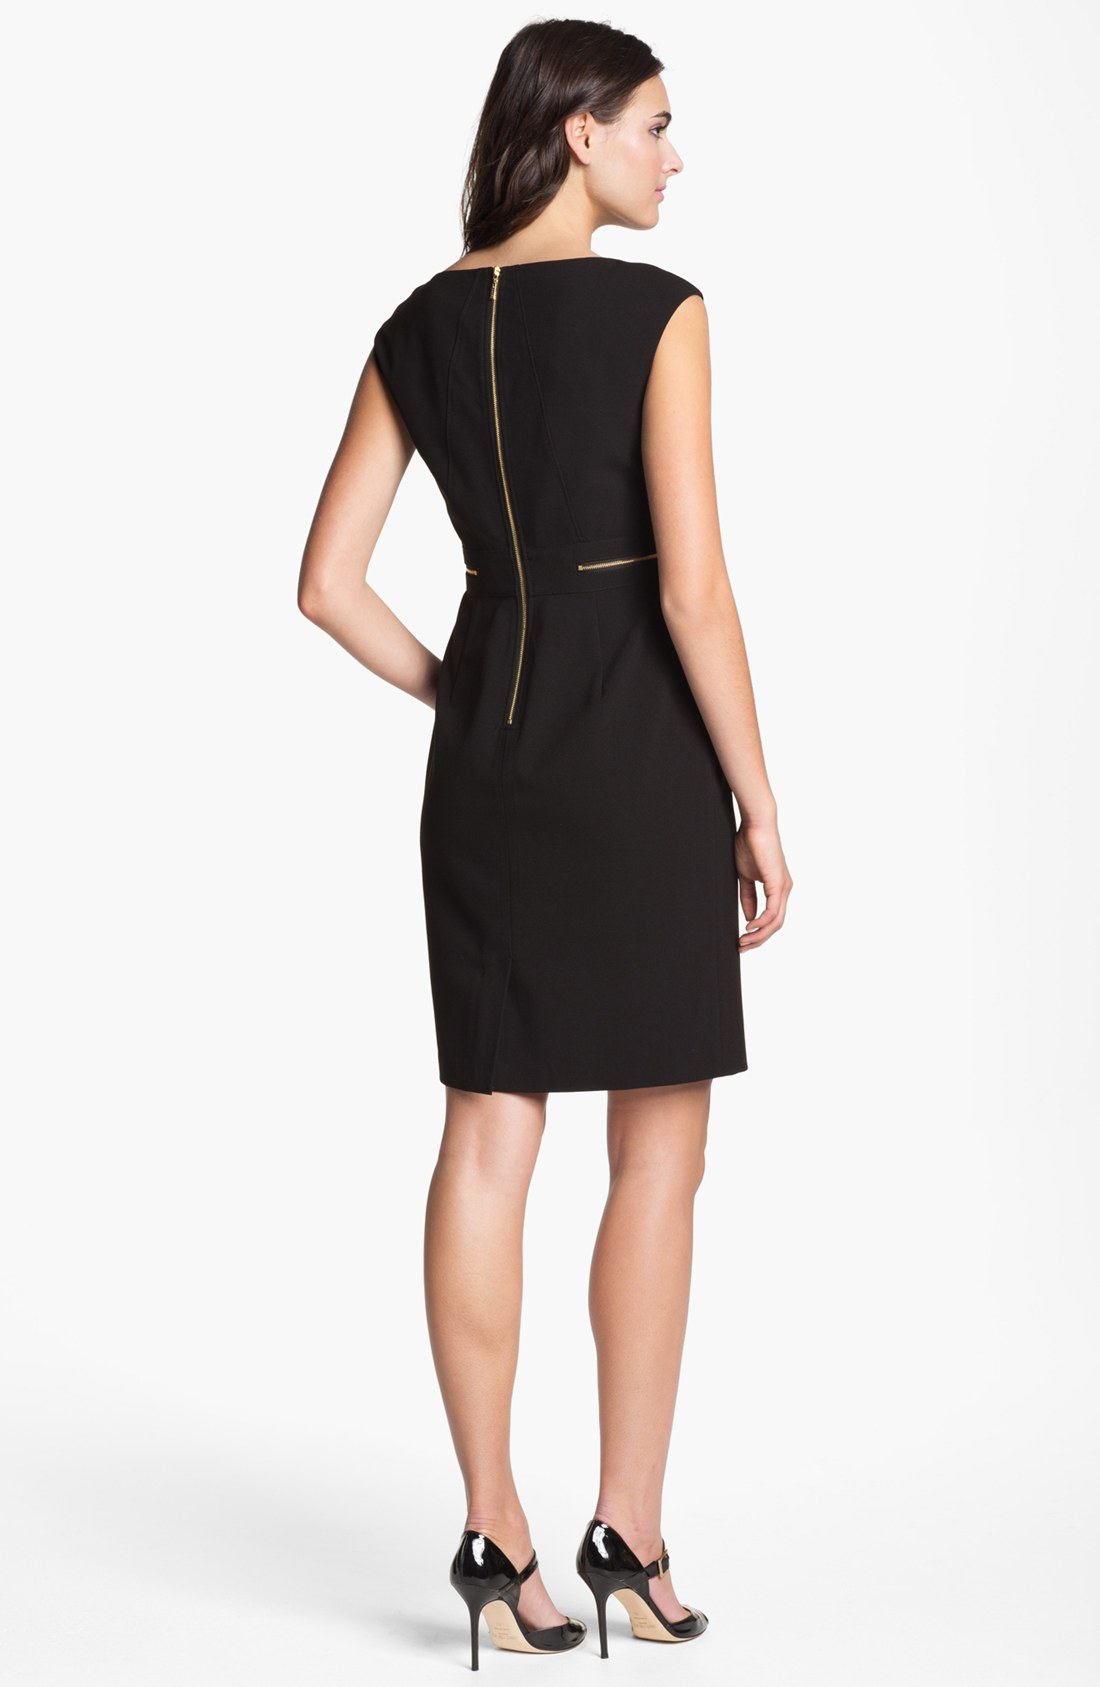 calvin klein black dress with gold zippers